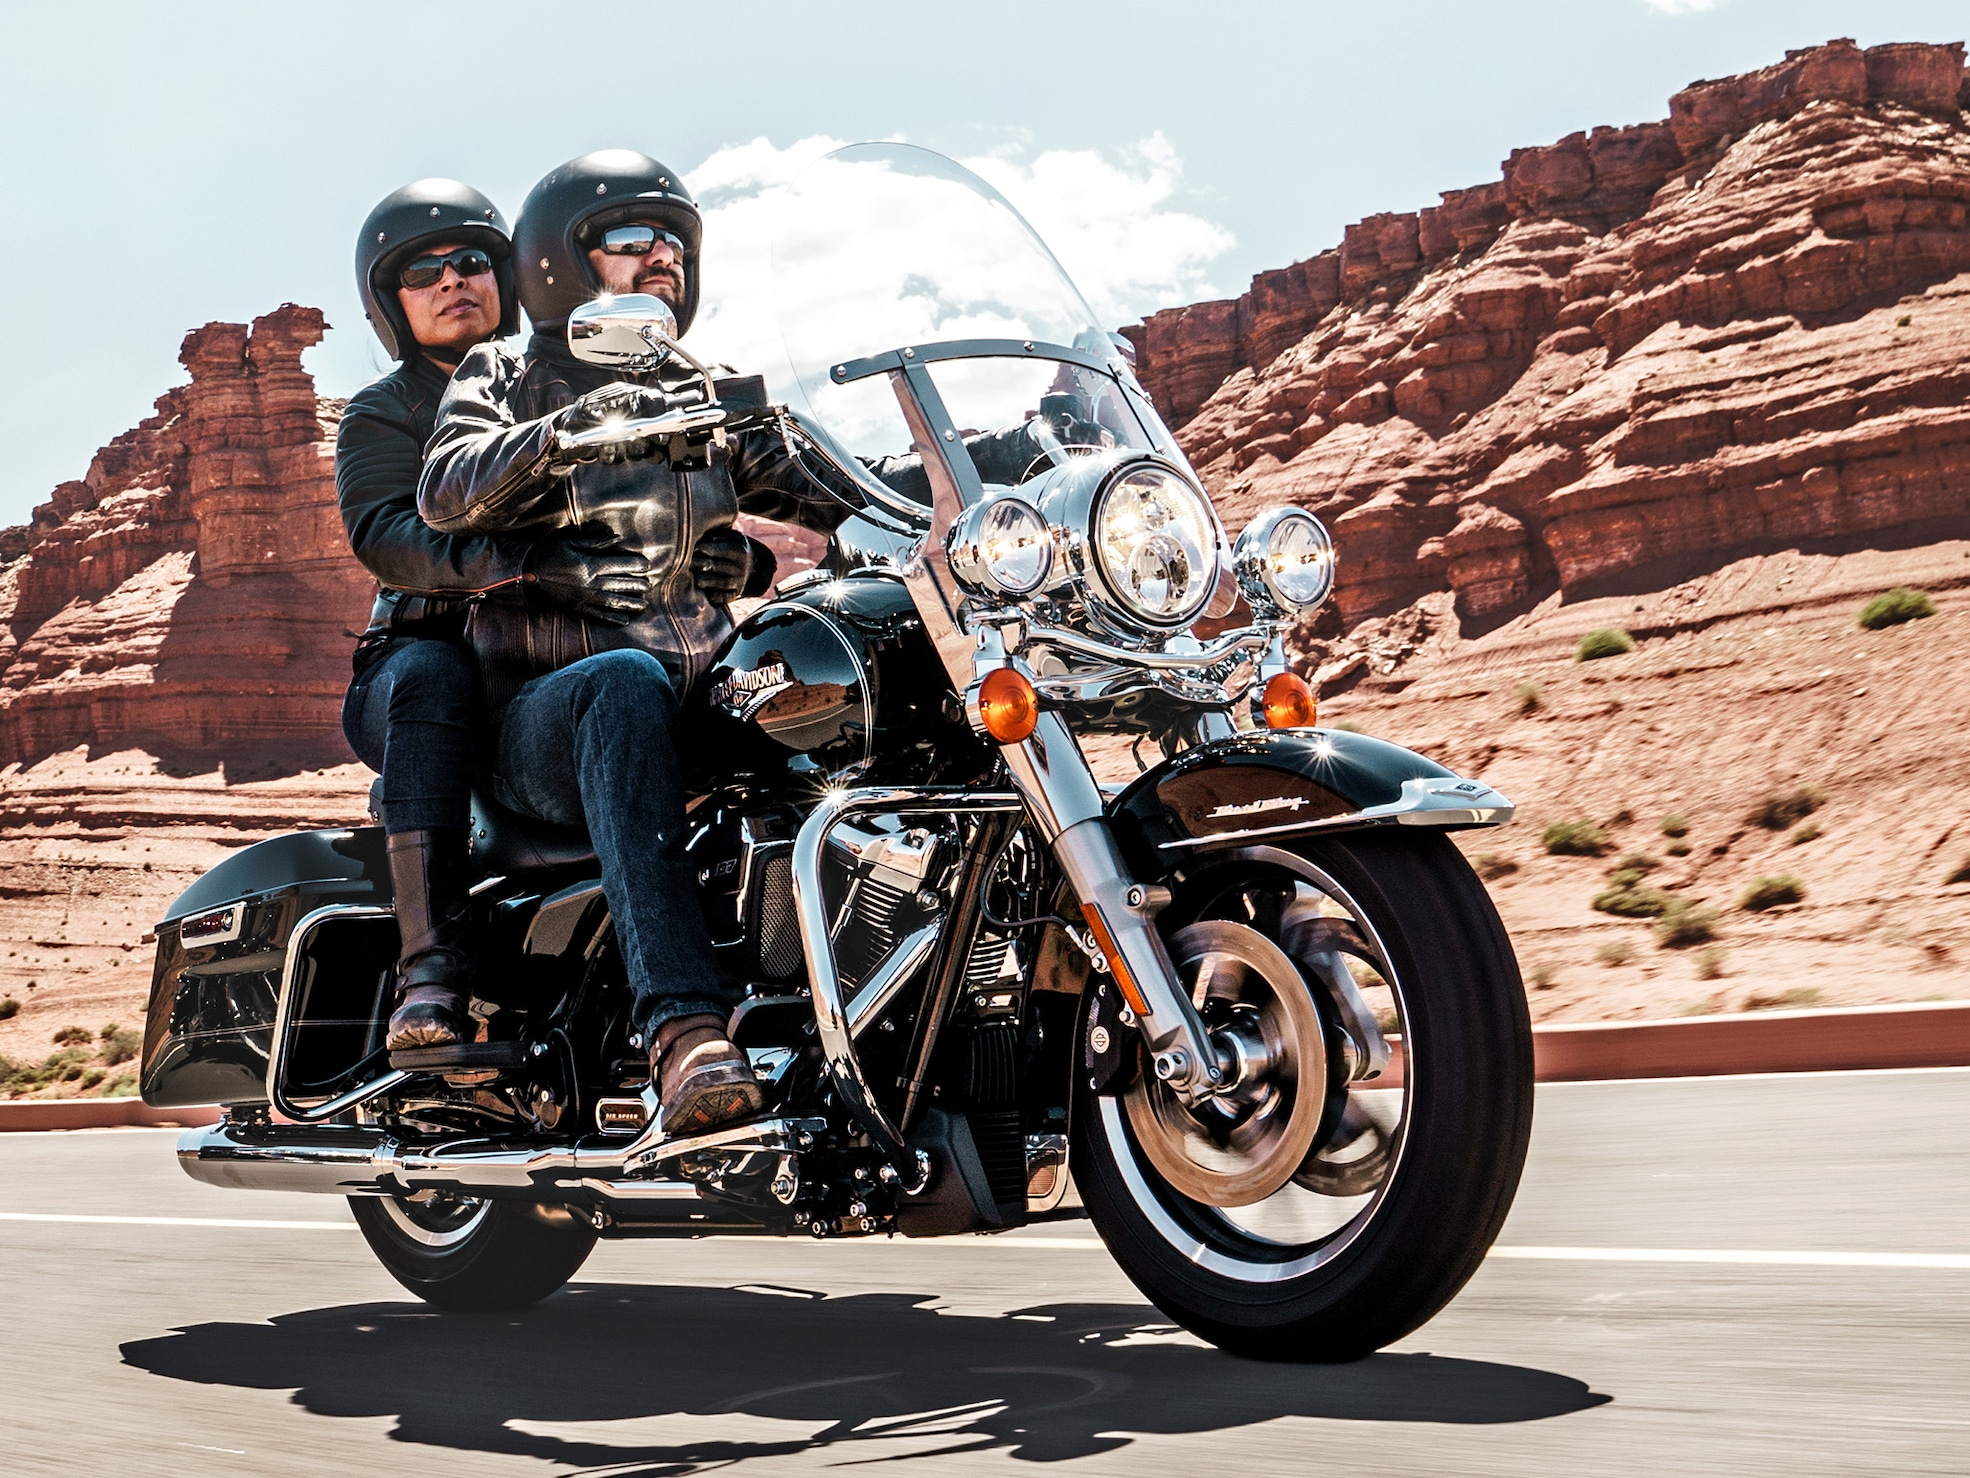 2018 Road King Classic | Harley-Davidson Middle East/North ...